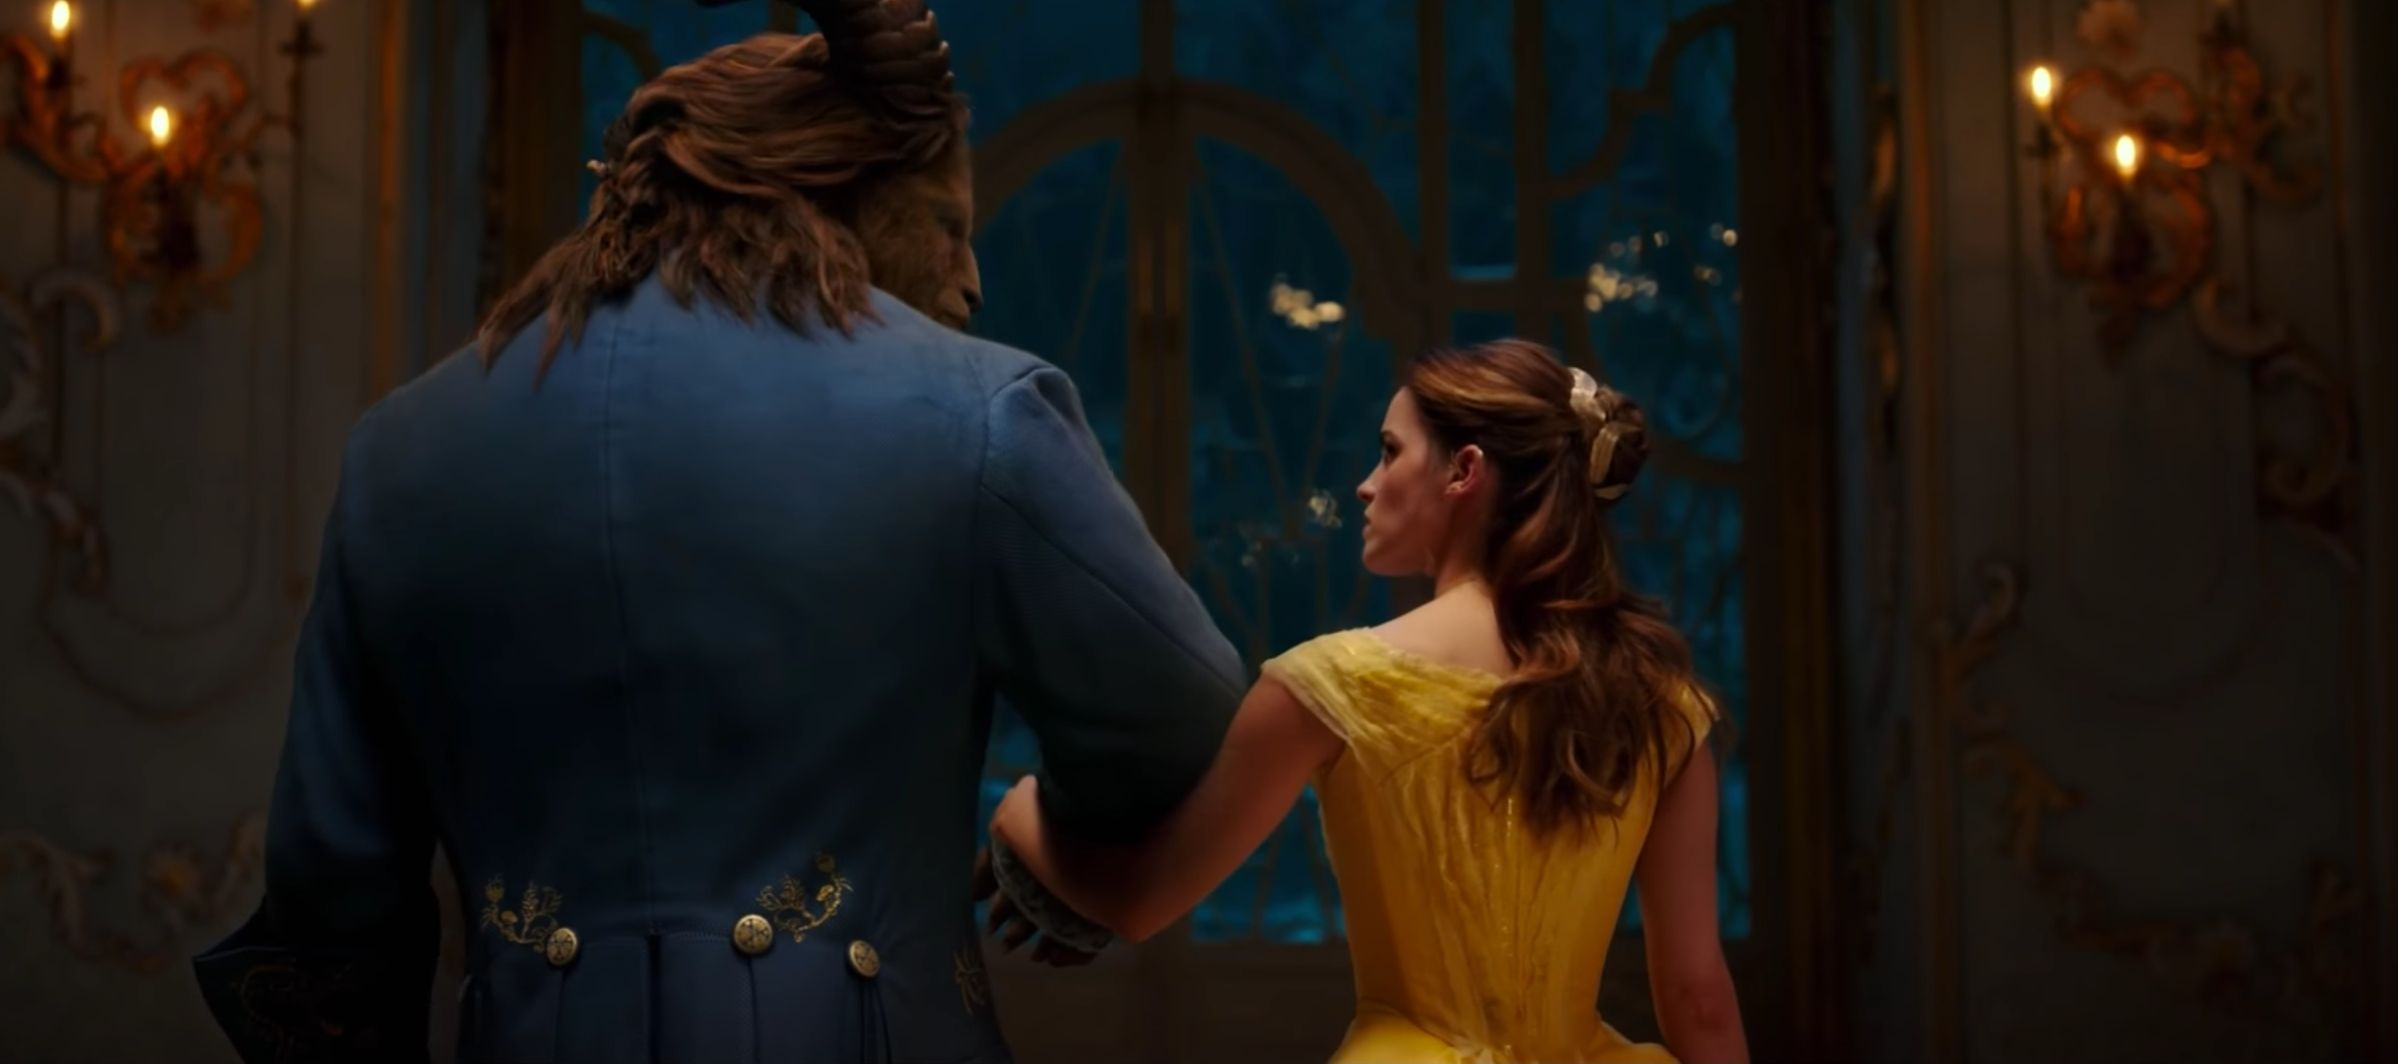 Ariana Grande And John Legend's 'Beauty And The Beast' Duet Makes Debut In New